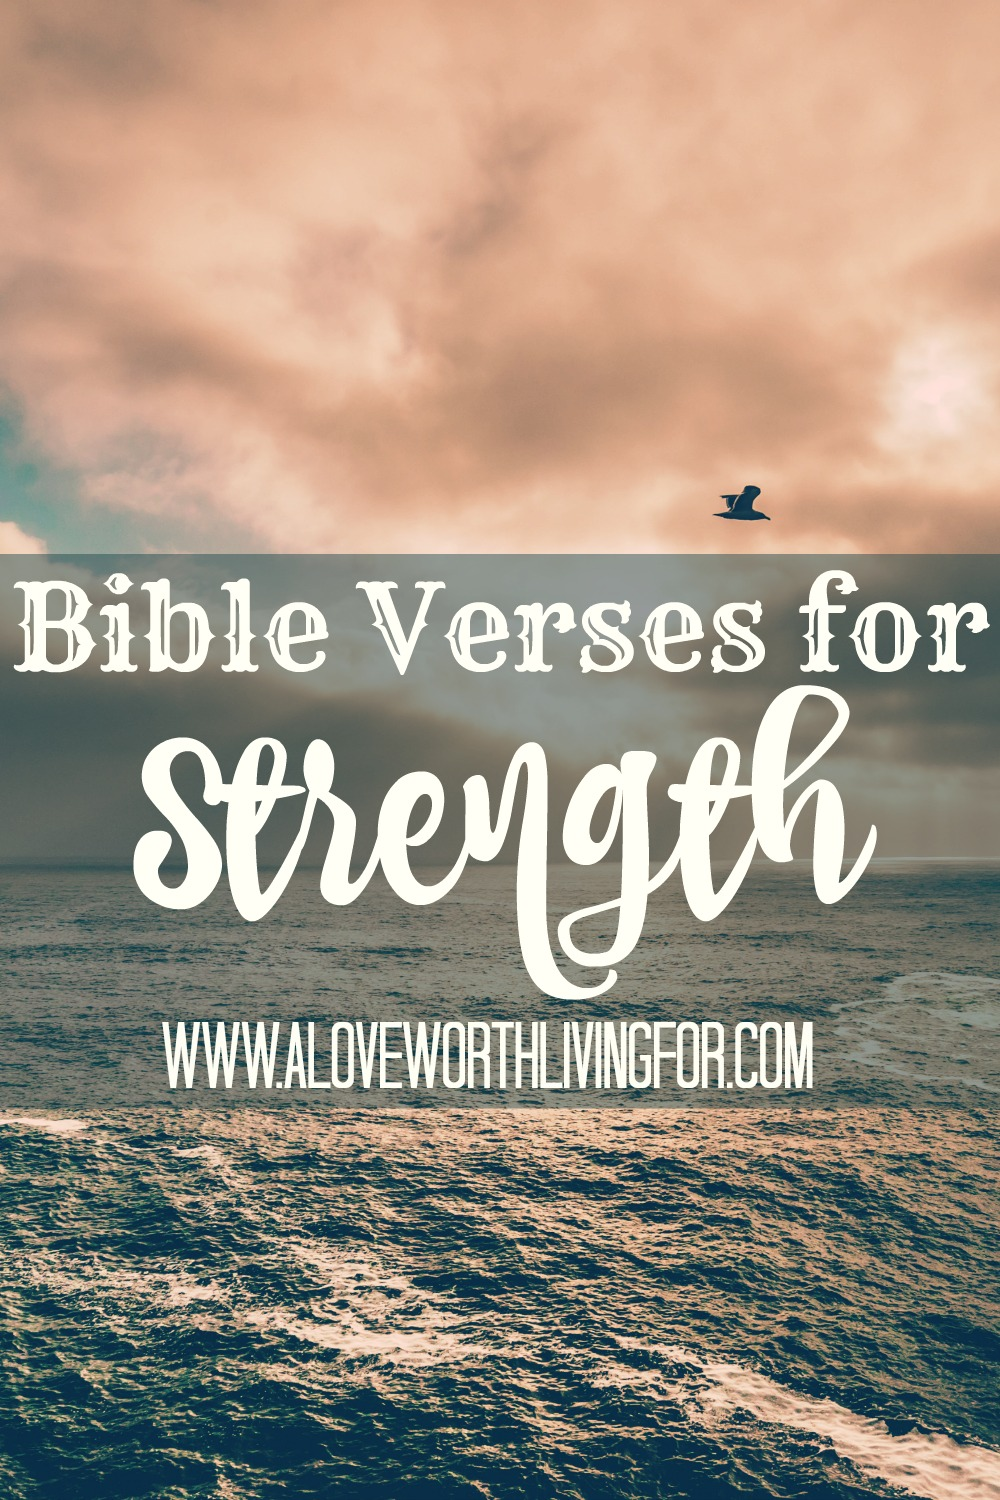 Quotes On Strength Bible: Bible Verses For Strength